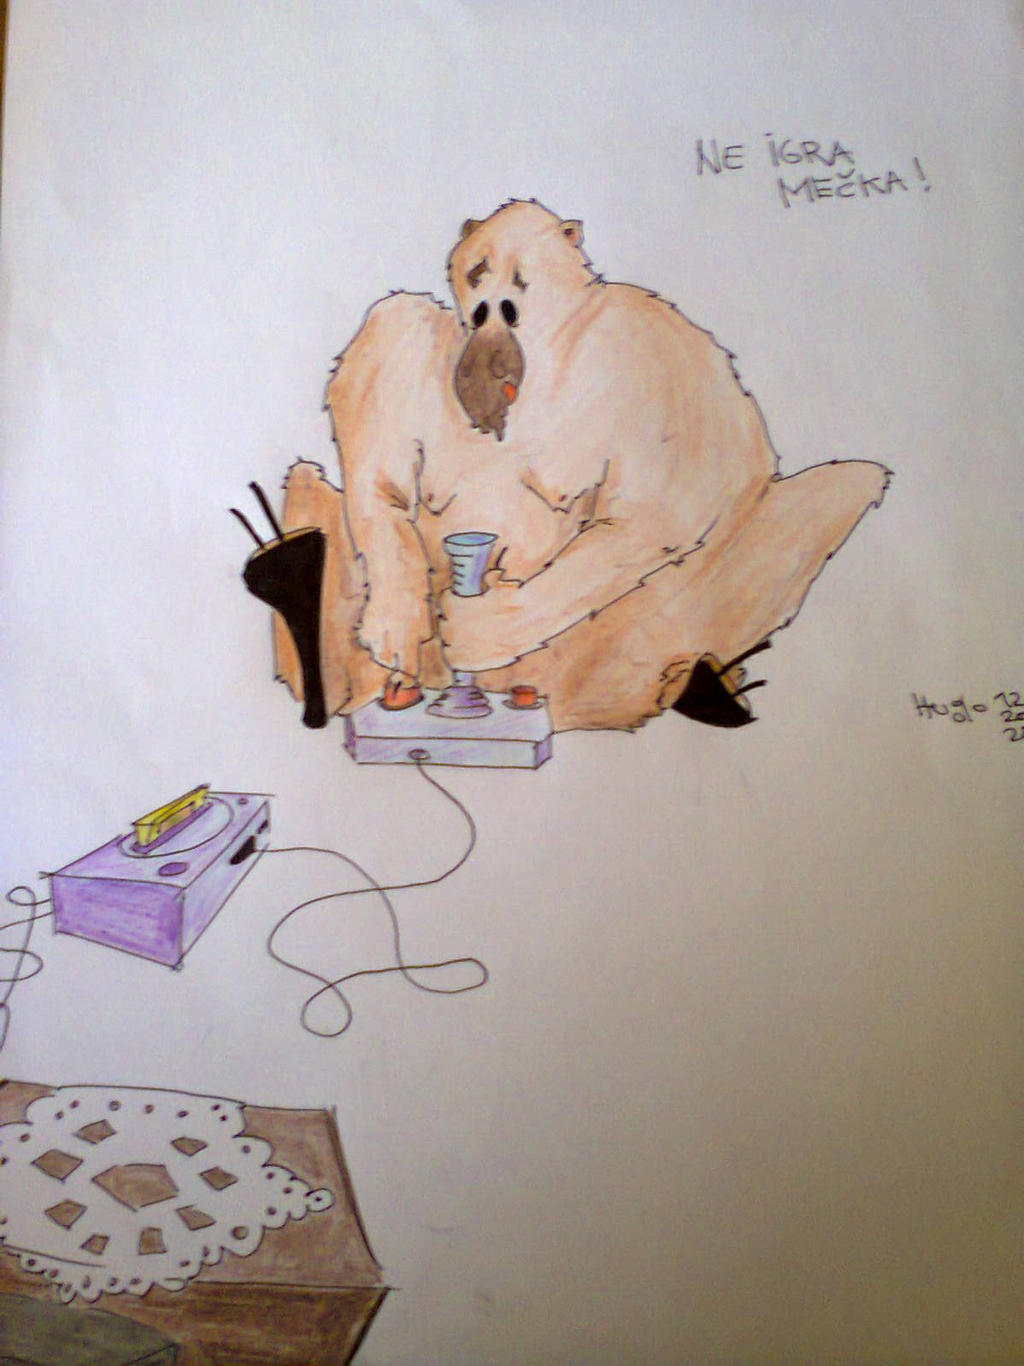 Moja umetnos' Ne_igra_mecka___the_girl_bear_doesn_t_play_by_micromegas1986-d6tkns8